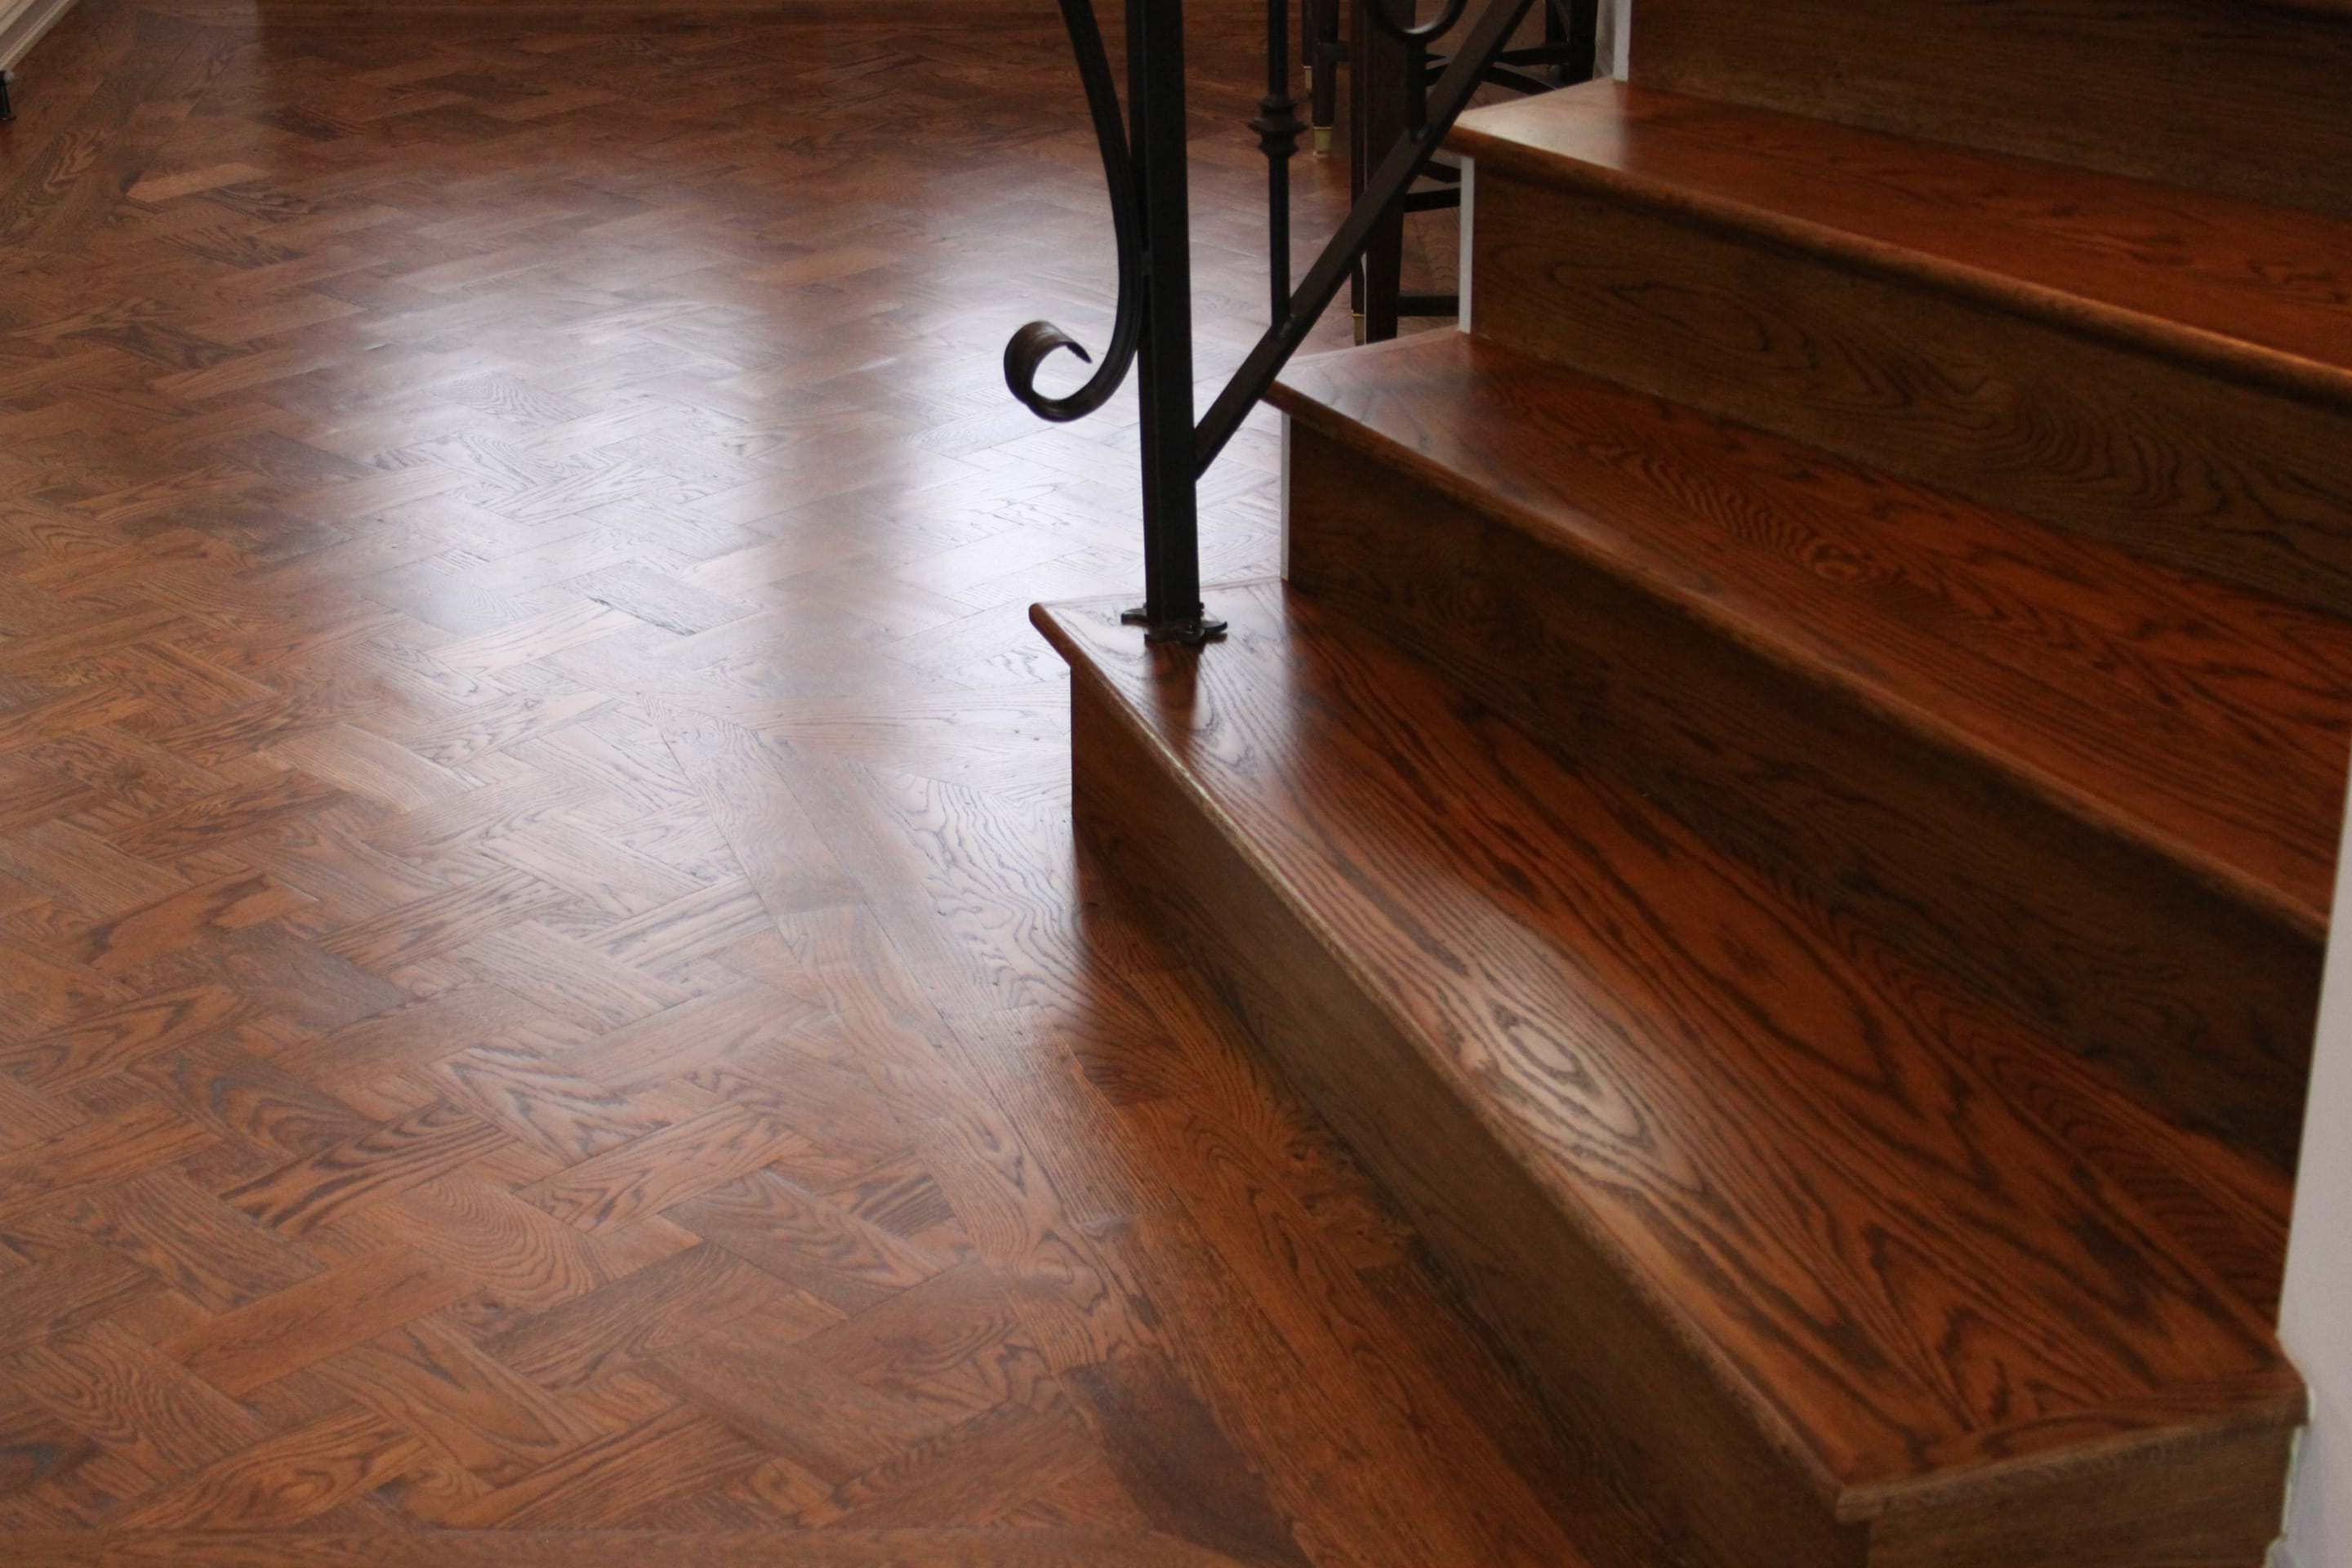 Brücke Flooring in Tulsa, Oklahoma - construction - hardwood - water damage - engineered floors